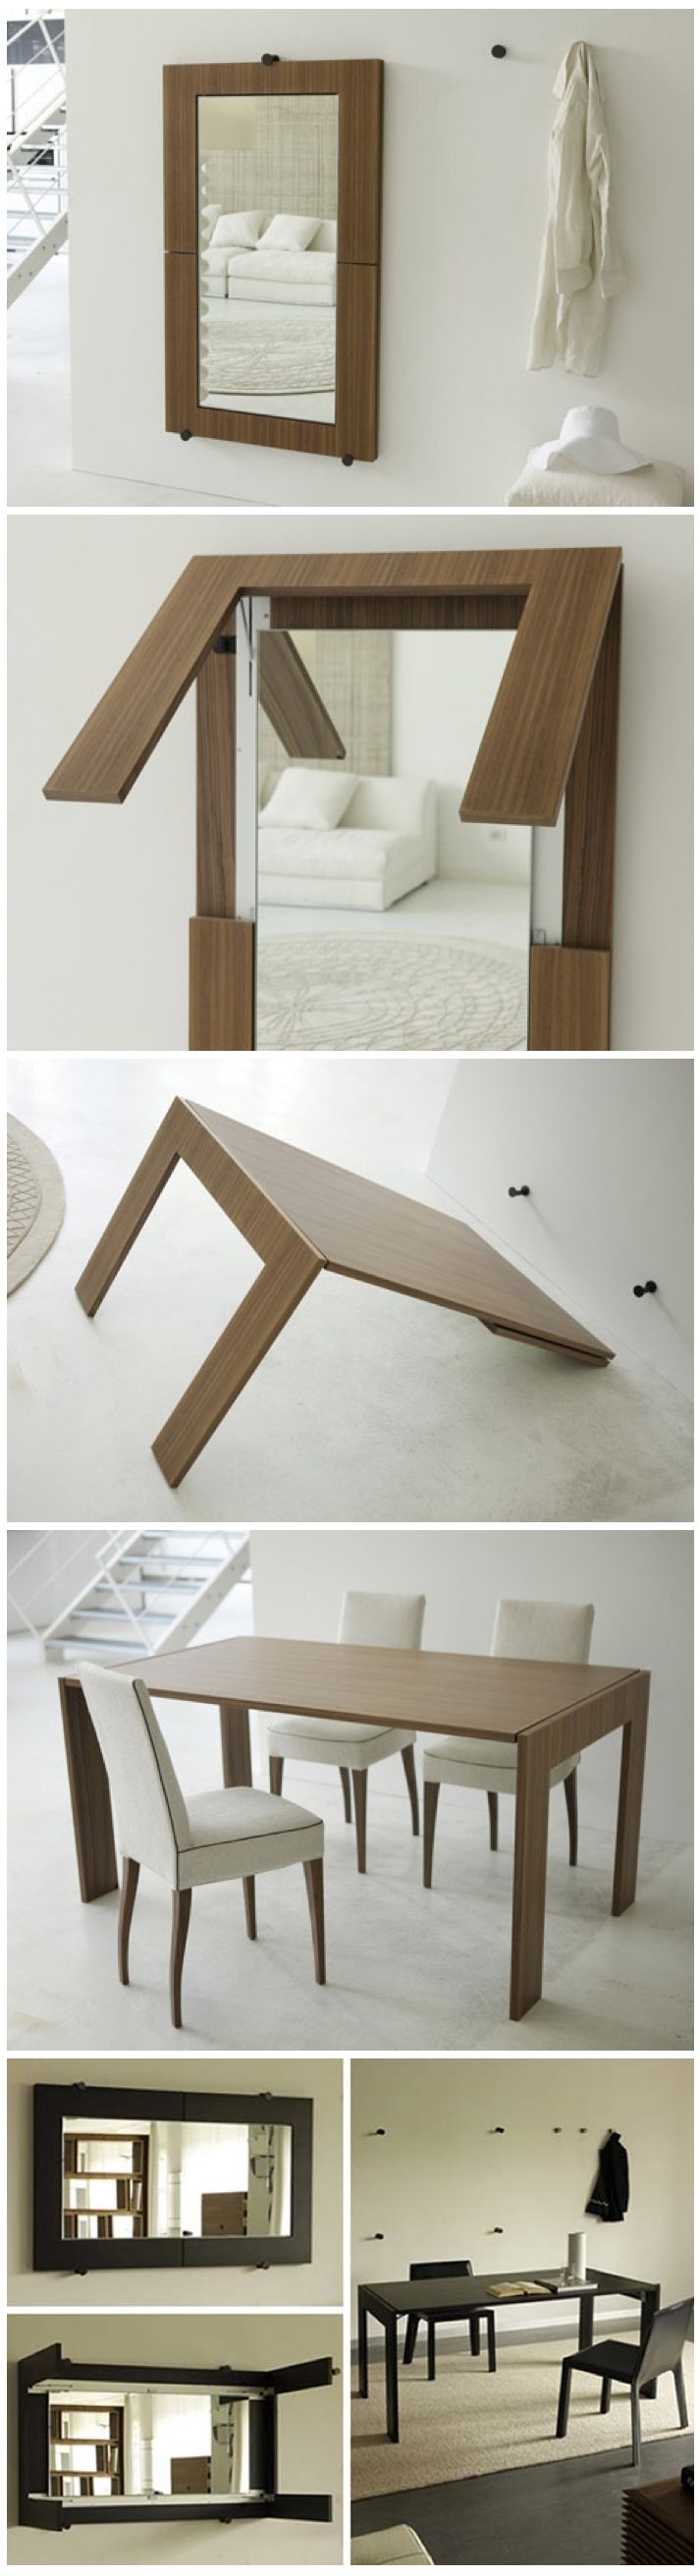 miroir / table - convertible